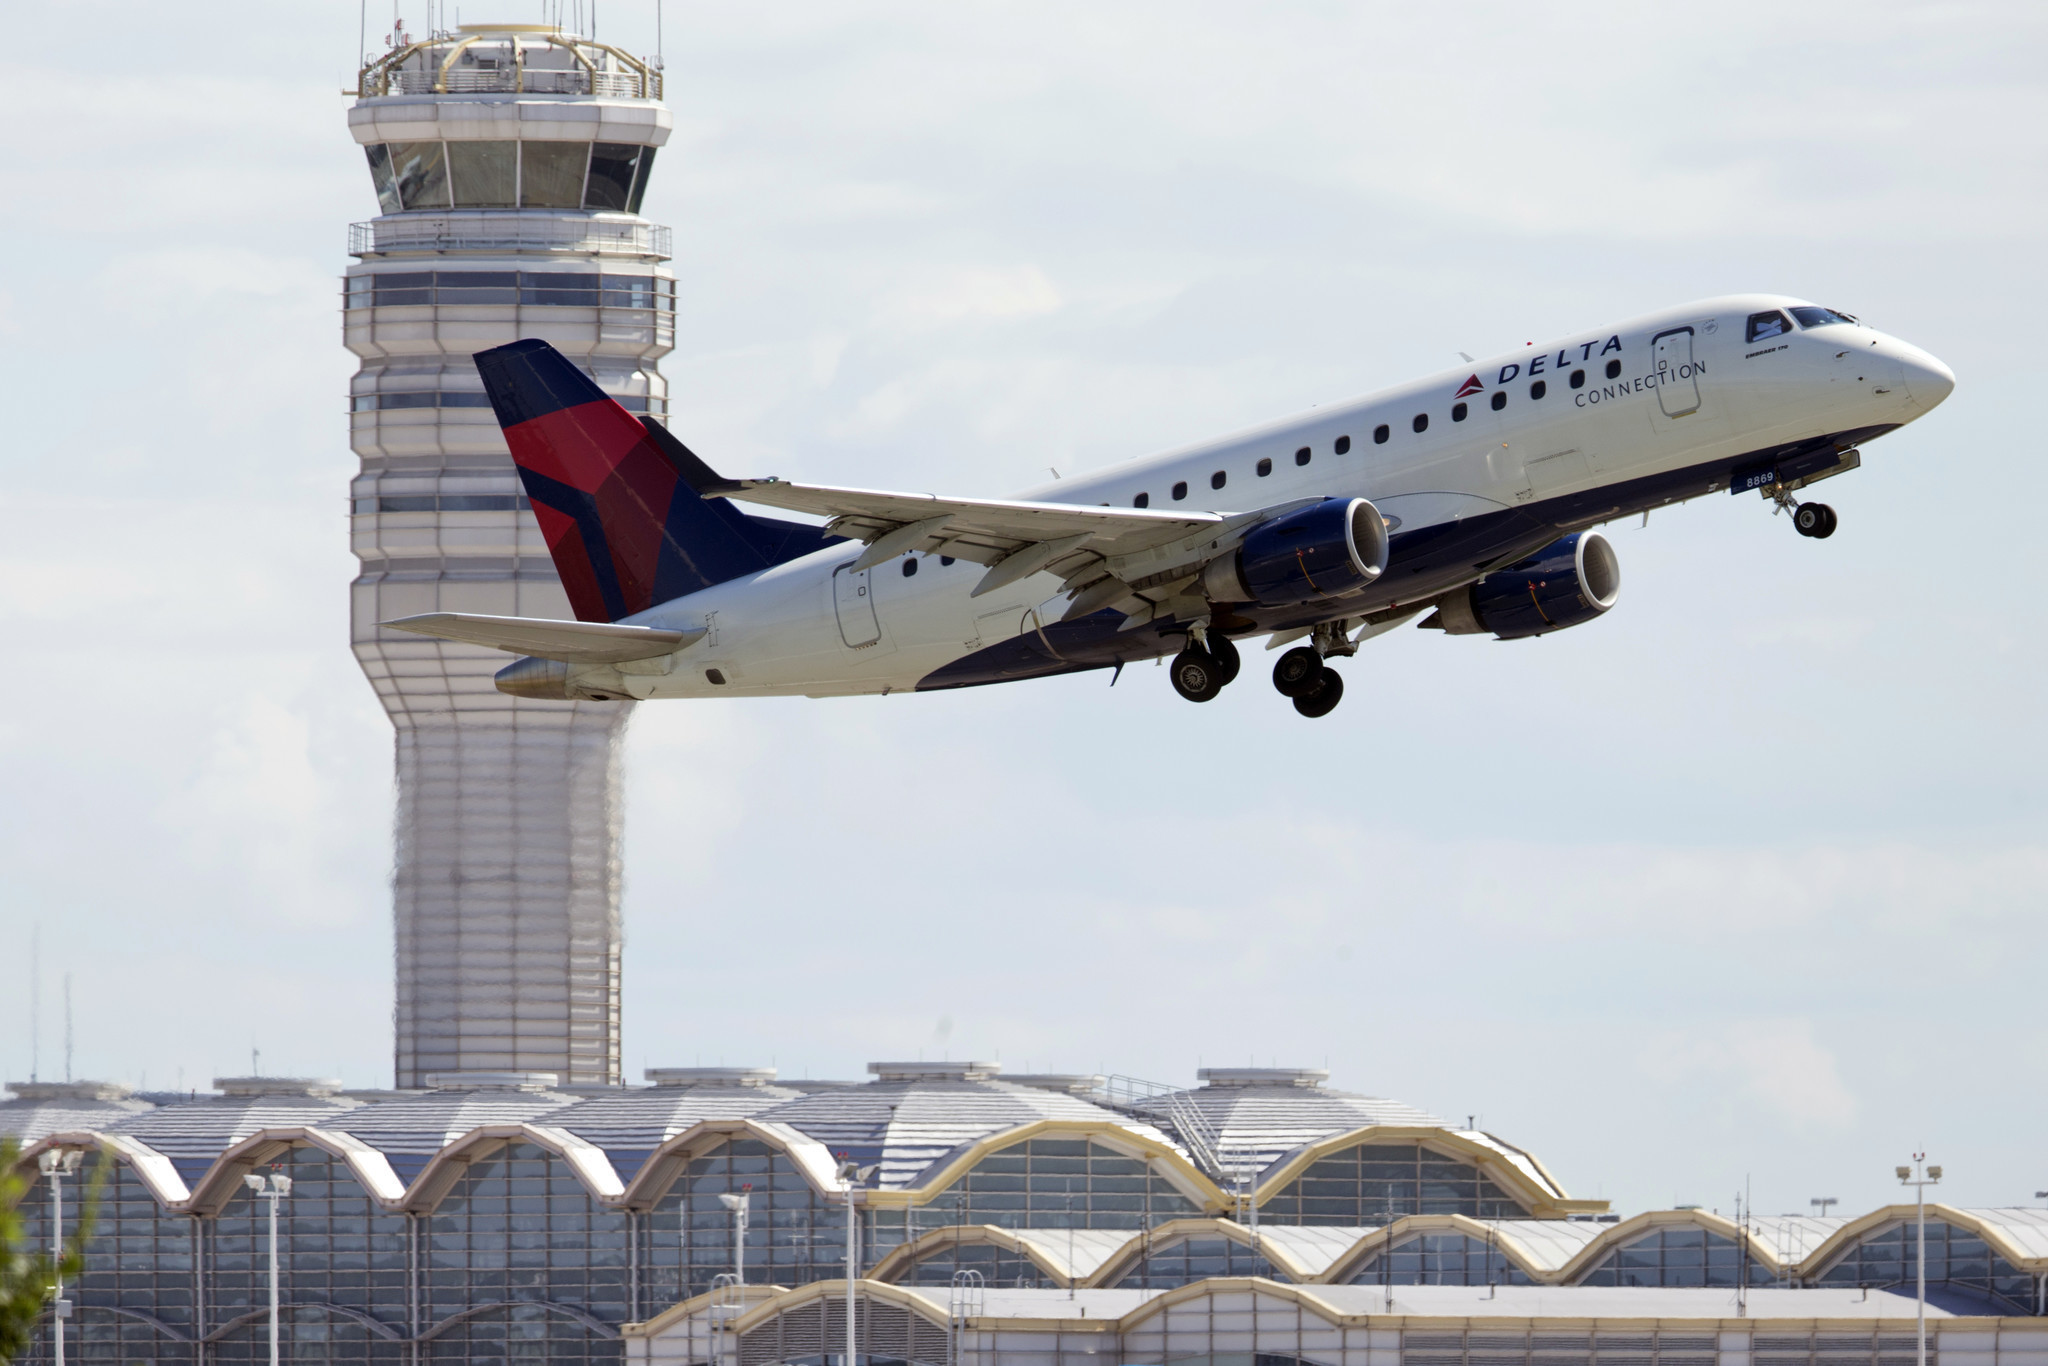 Overbooked flight on Delta? You now could get nearly $10,000 to give up your seat